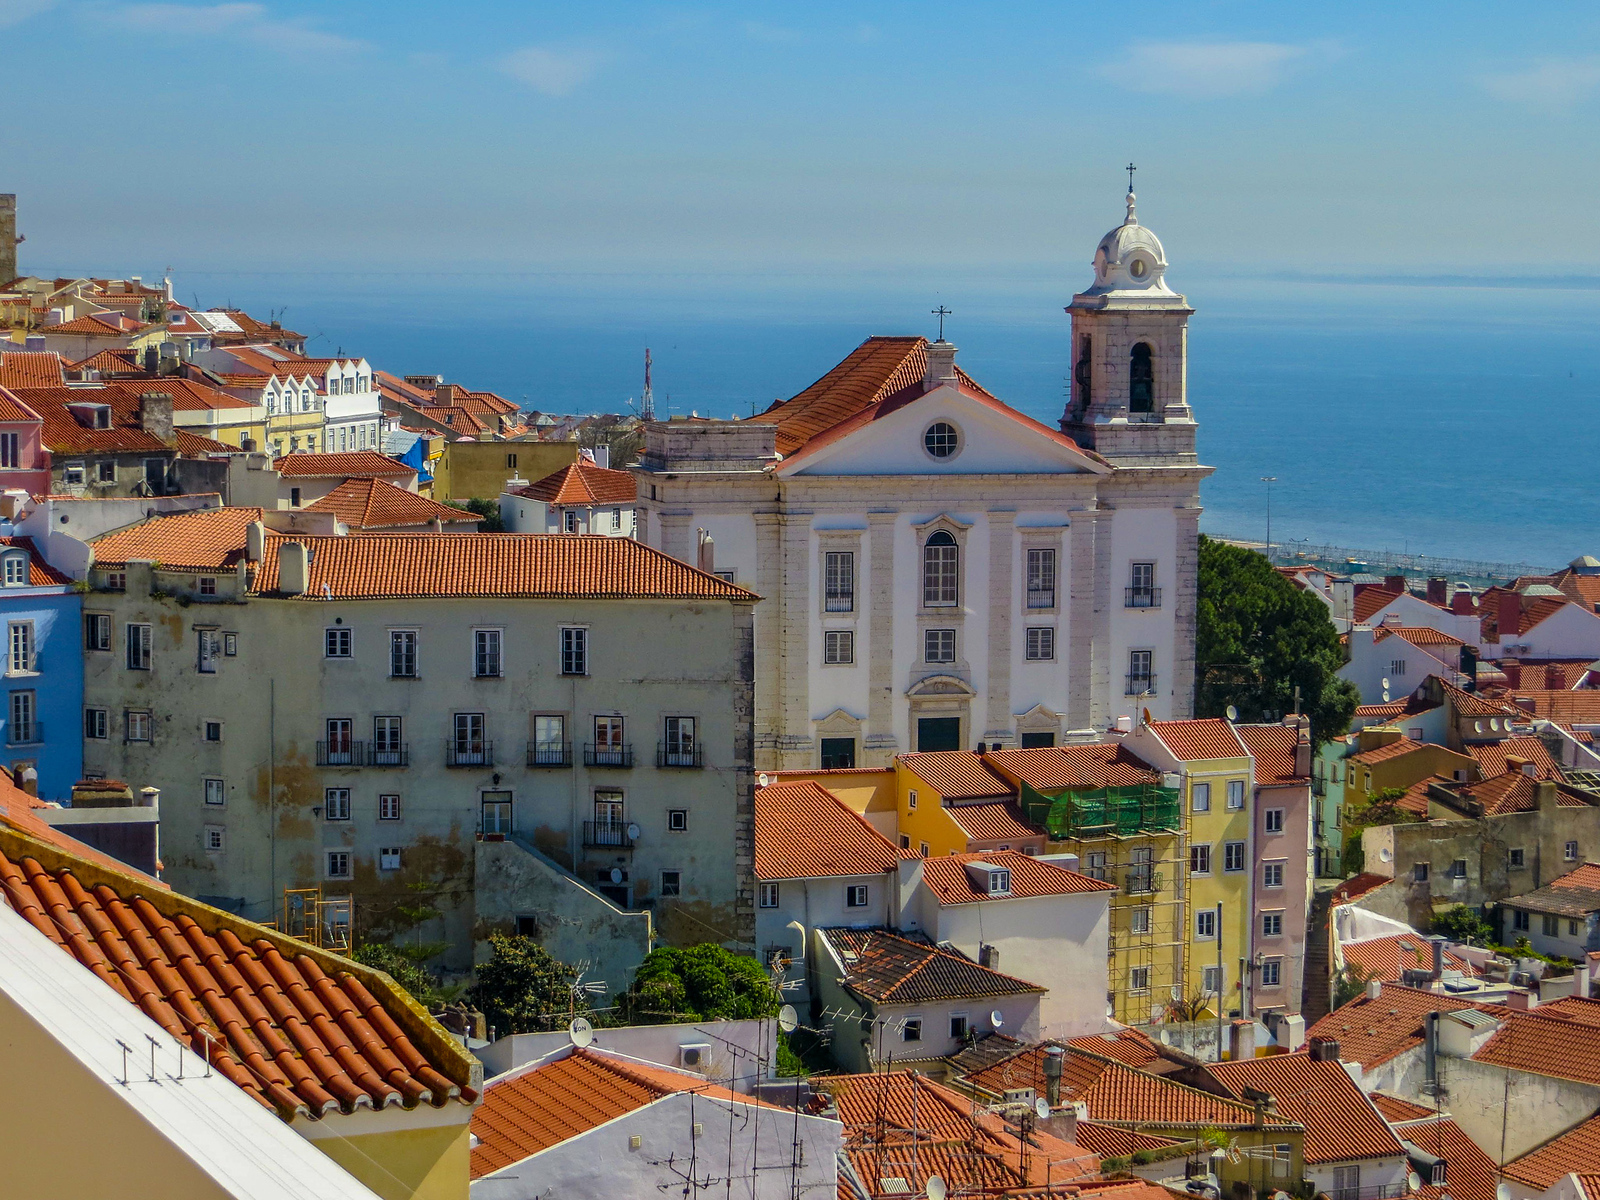 giving into travel fears or seeing lisbon? i pick lisbon!